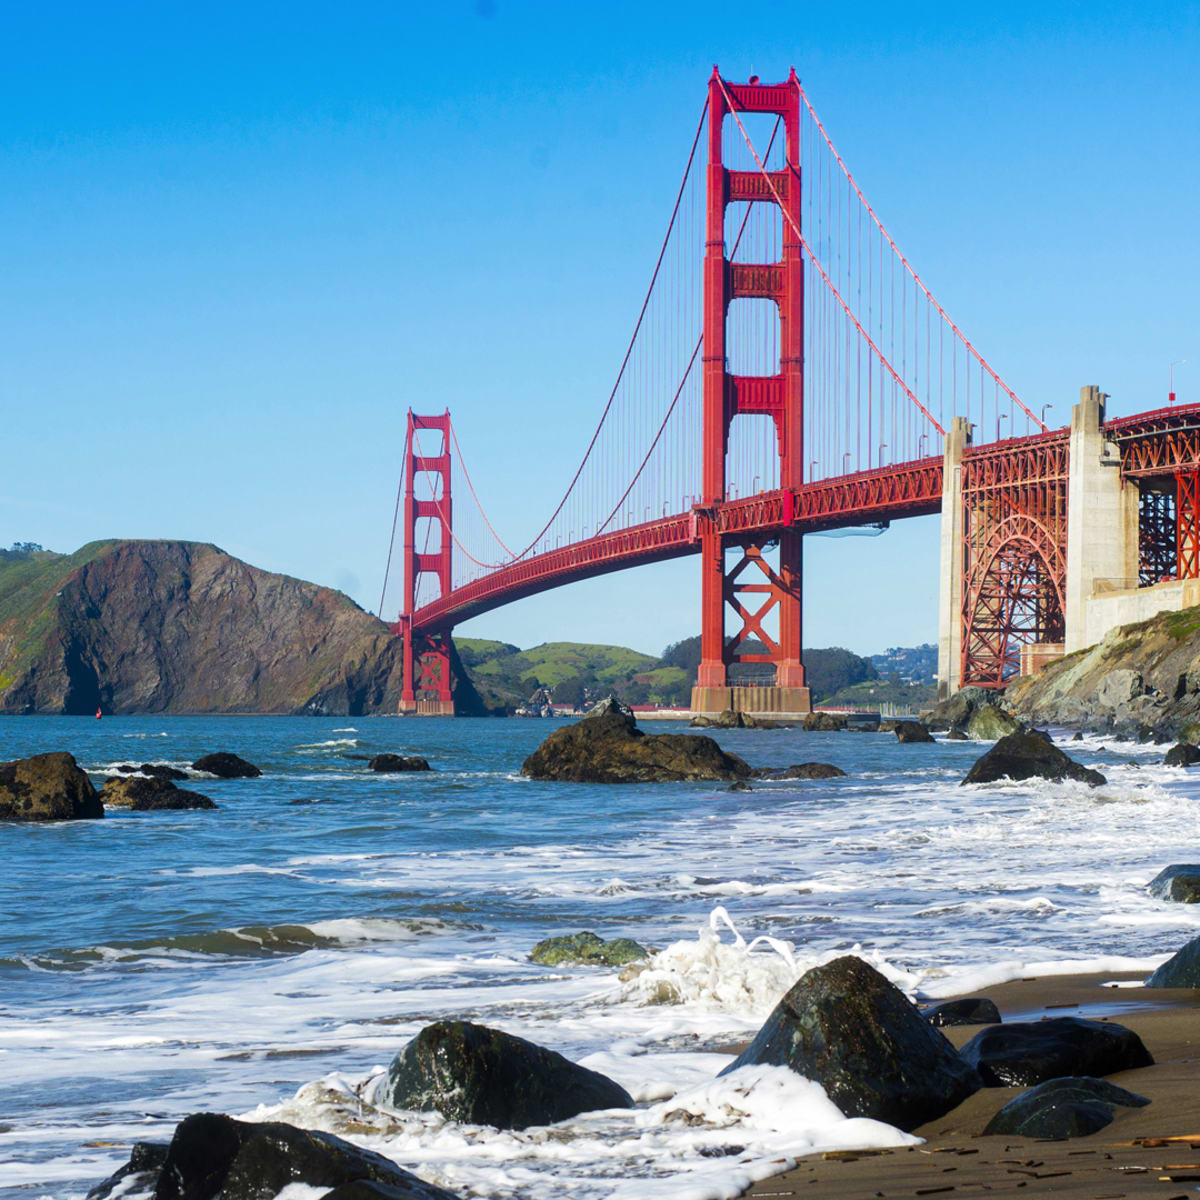 8 Surprising Facts About the Golden Gate Bridge - HISTORY